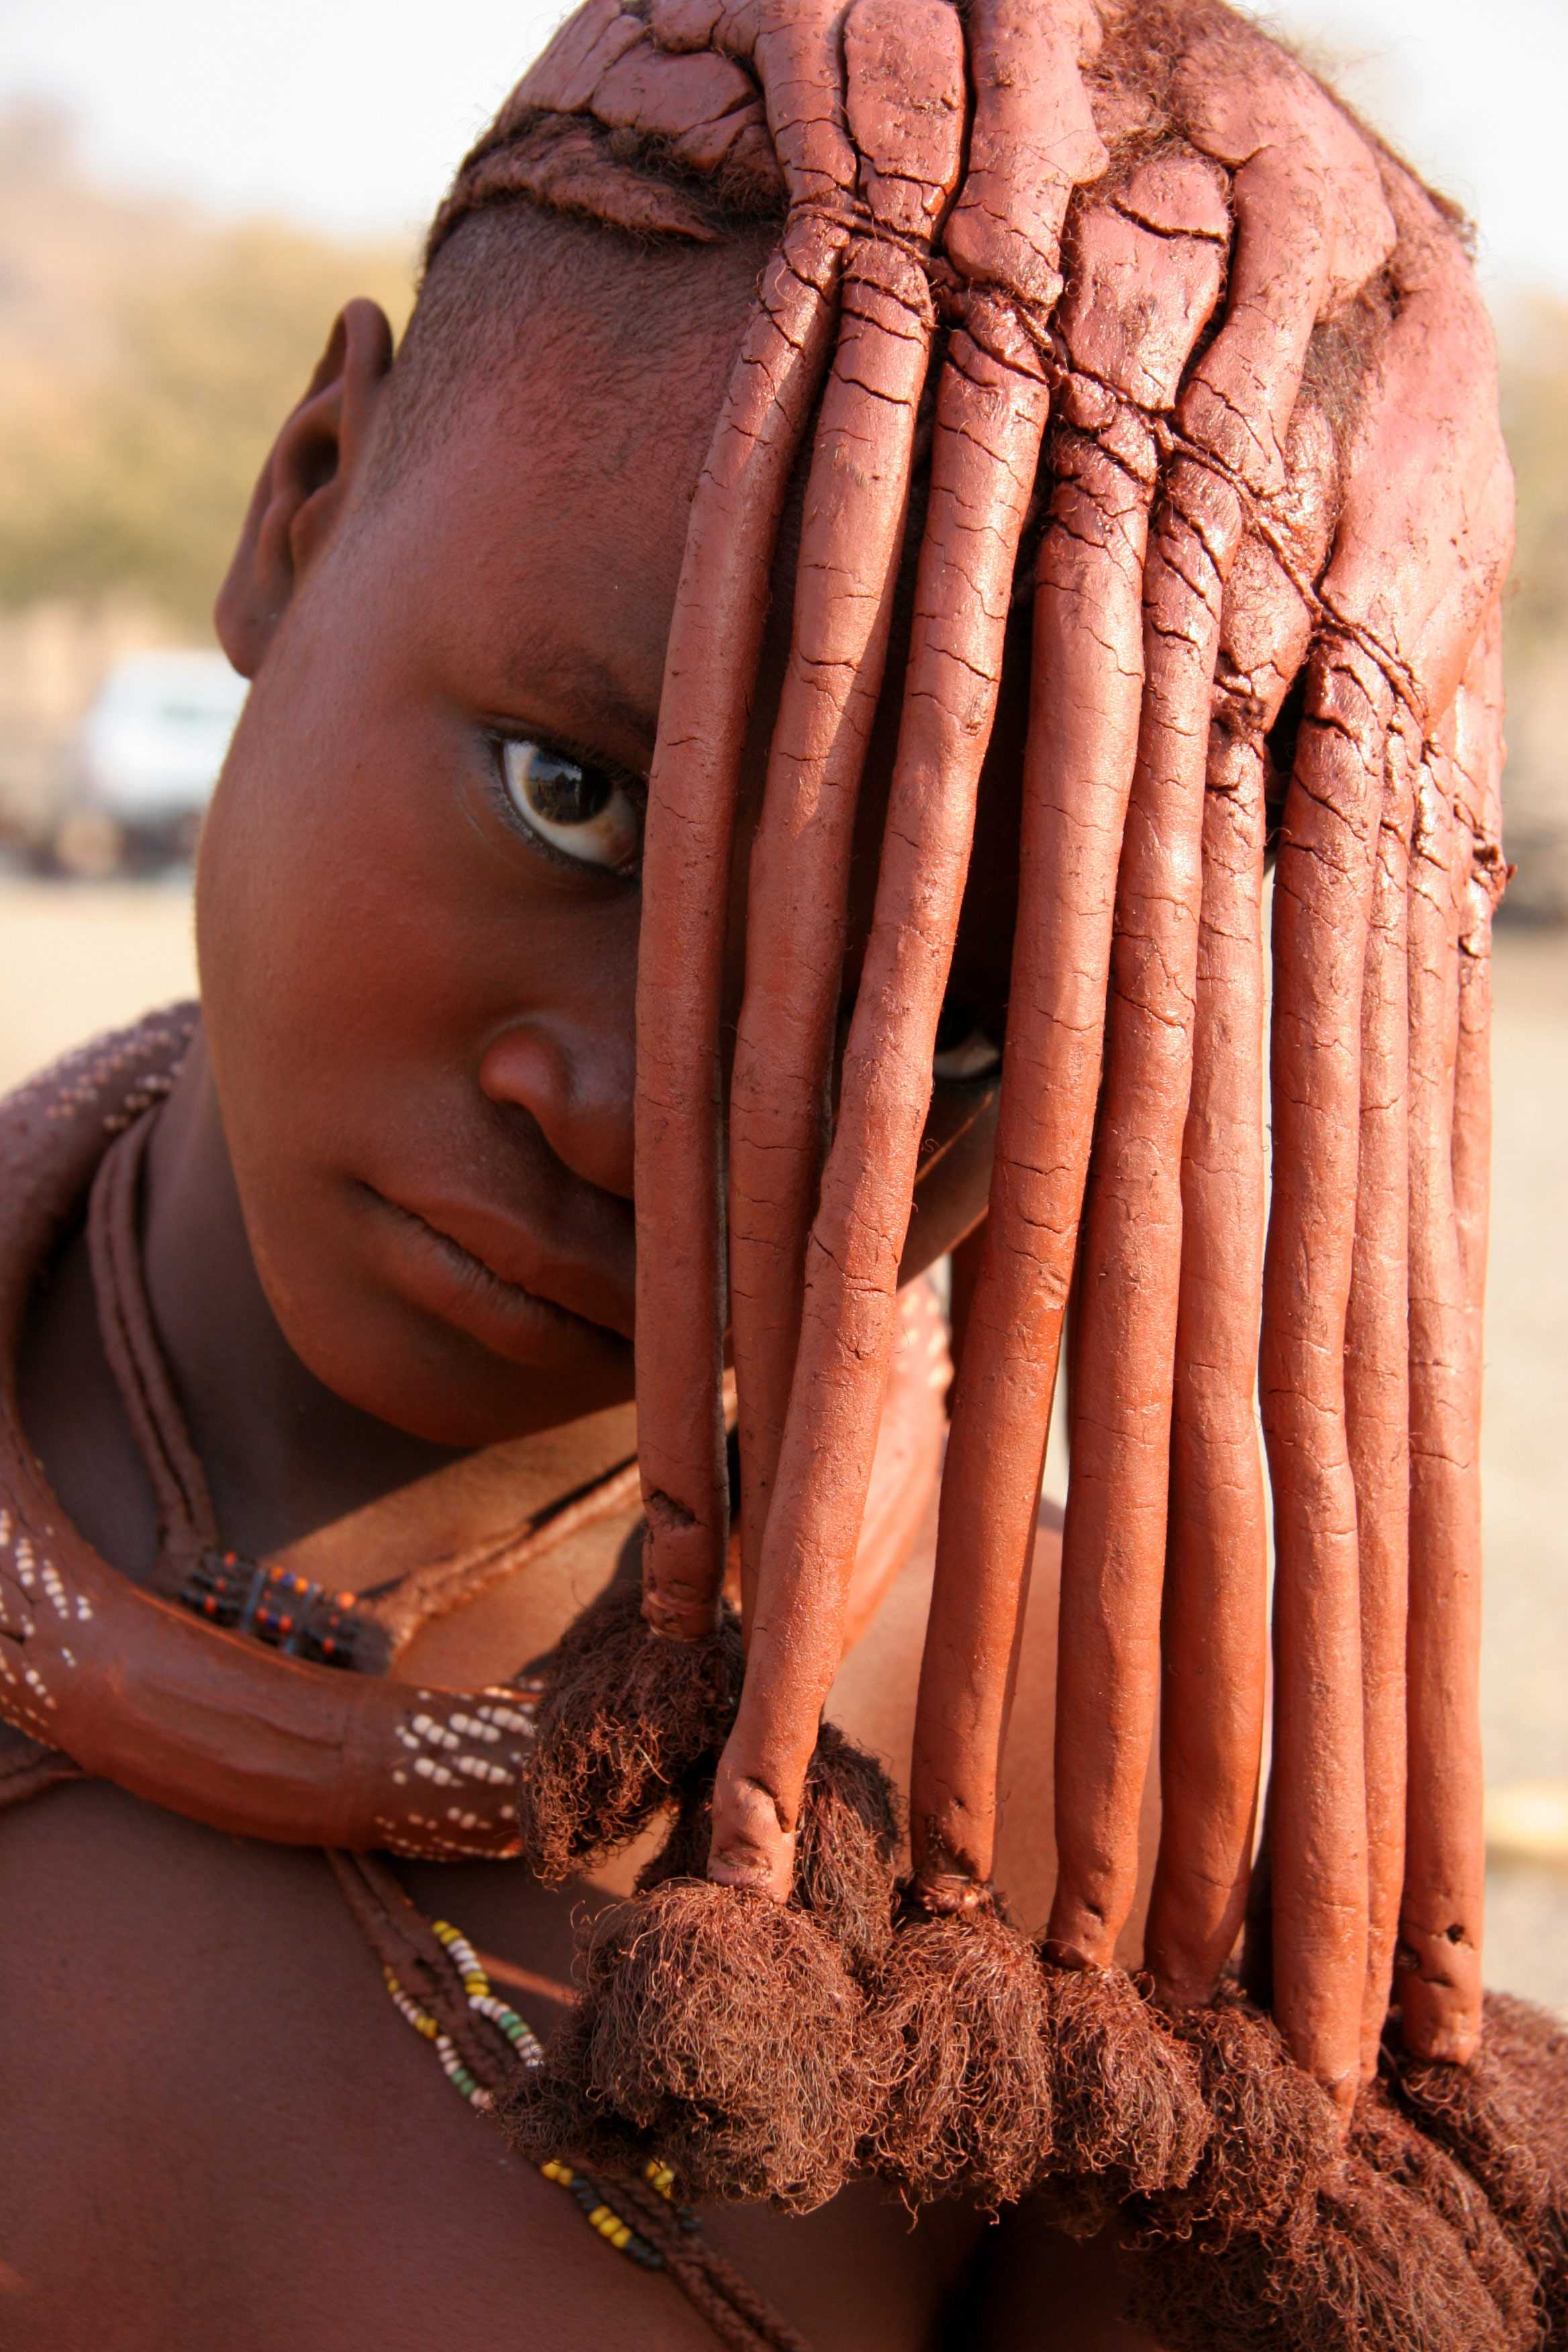 himba tribe member in northern Namibia